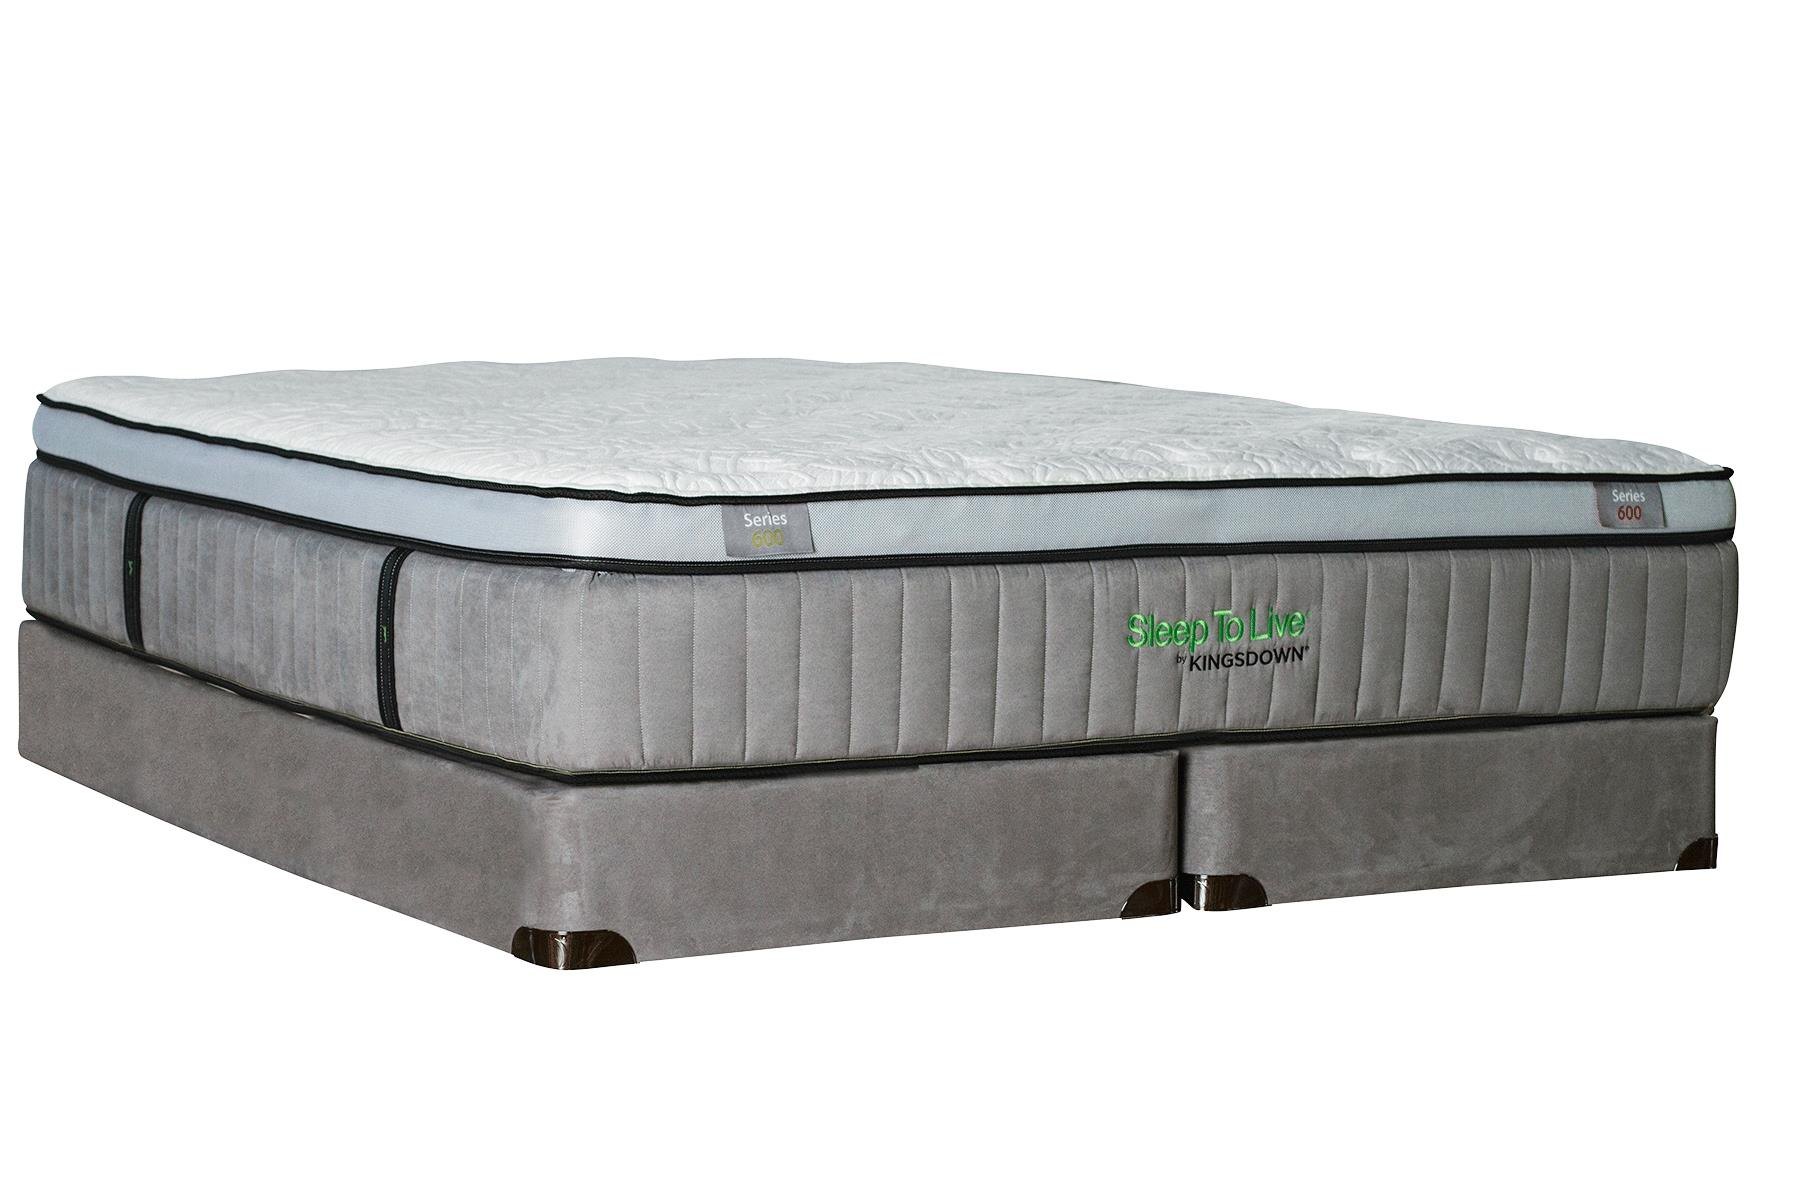 Kingsdown sleep to live 600 queen euro top mattress with for Couch 600 euro